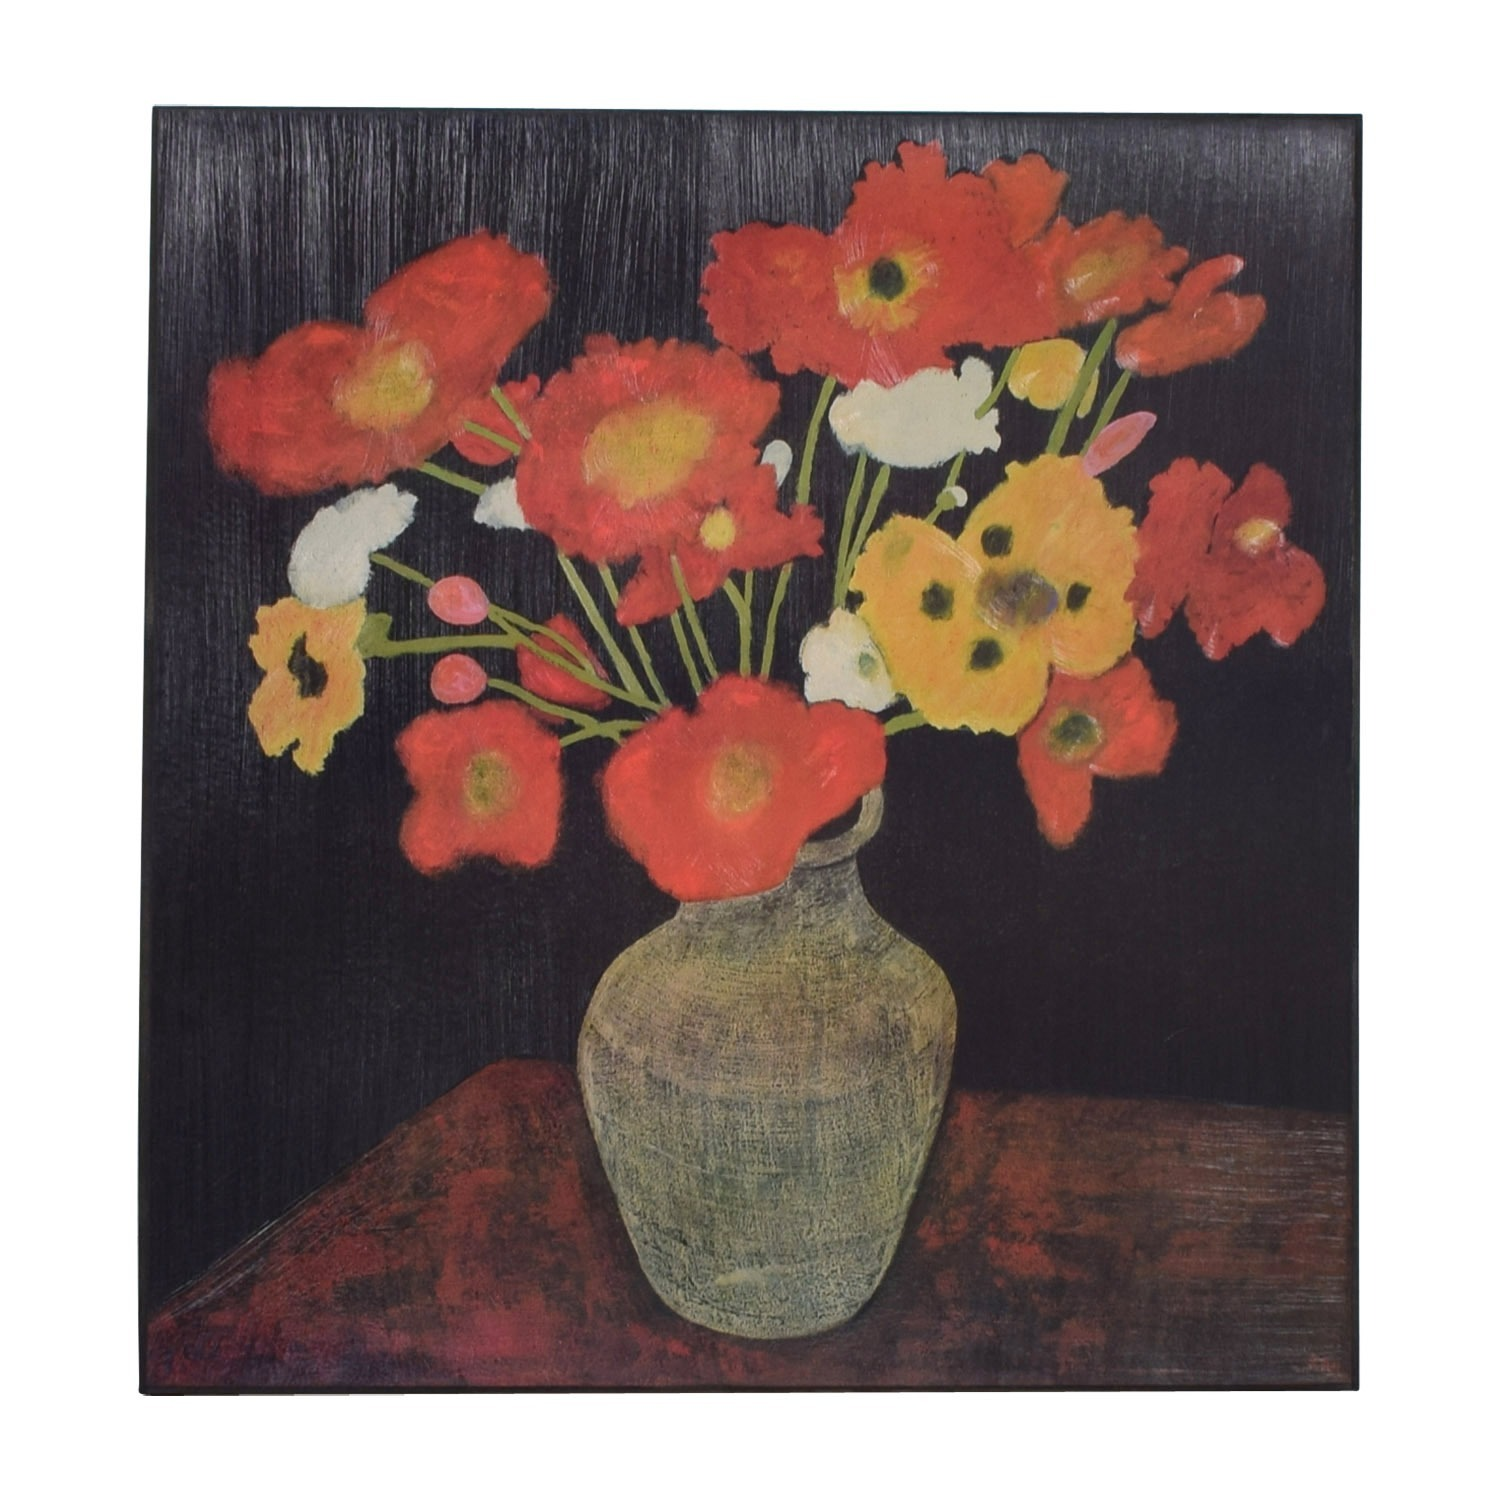 Crate & Barrel Jean Poppies Painting - image-1